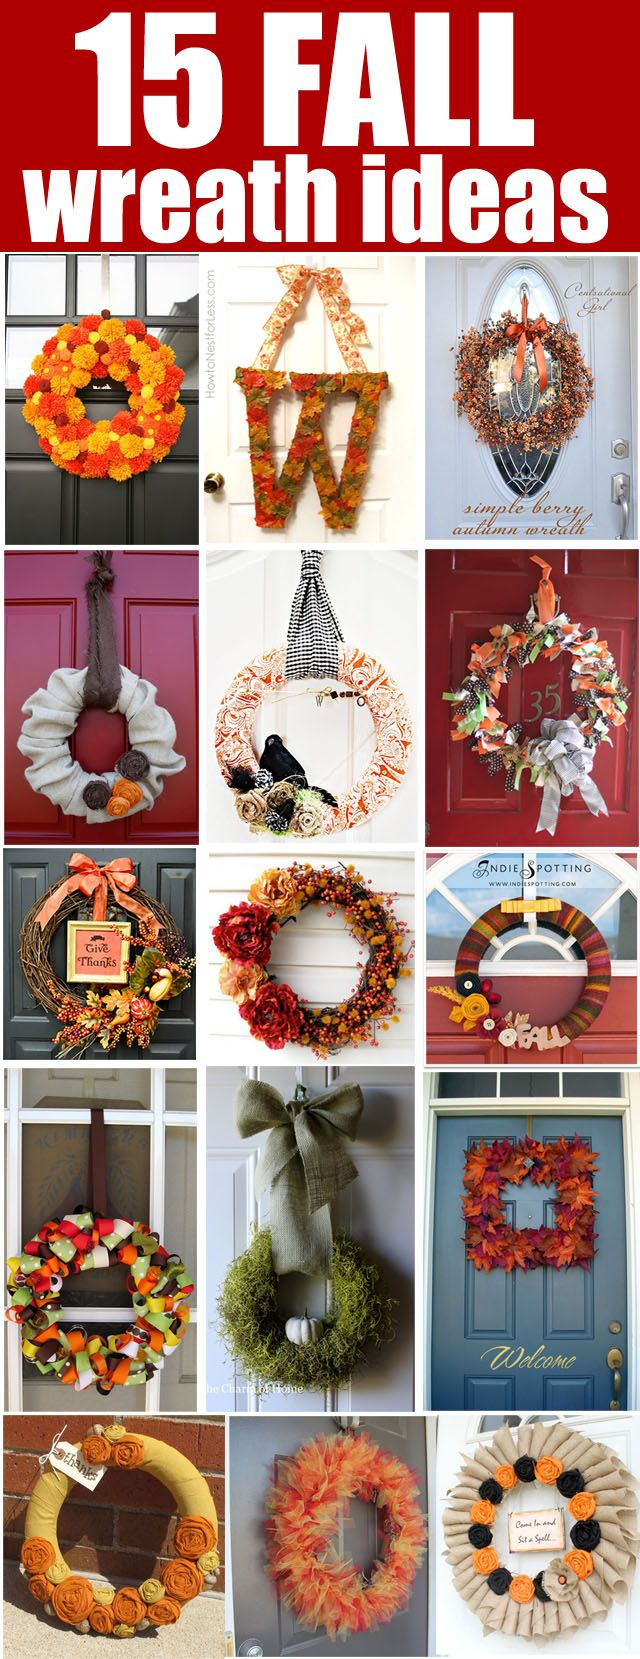 15 Fall wreath inspirations